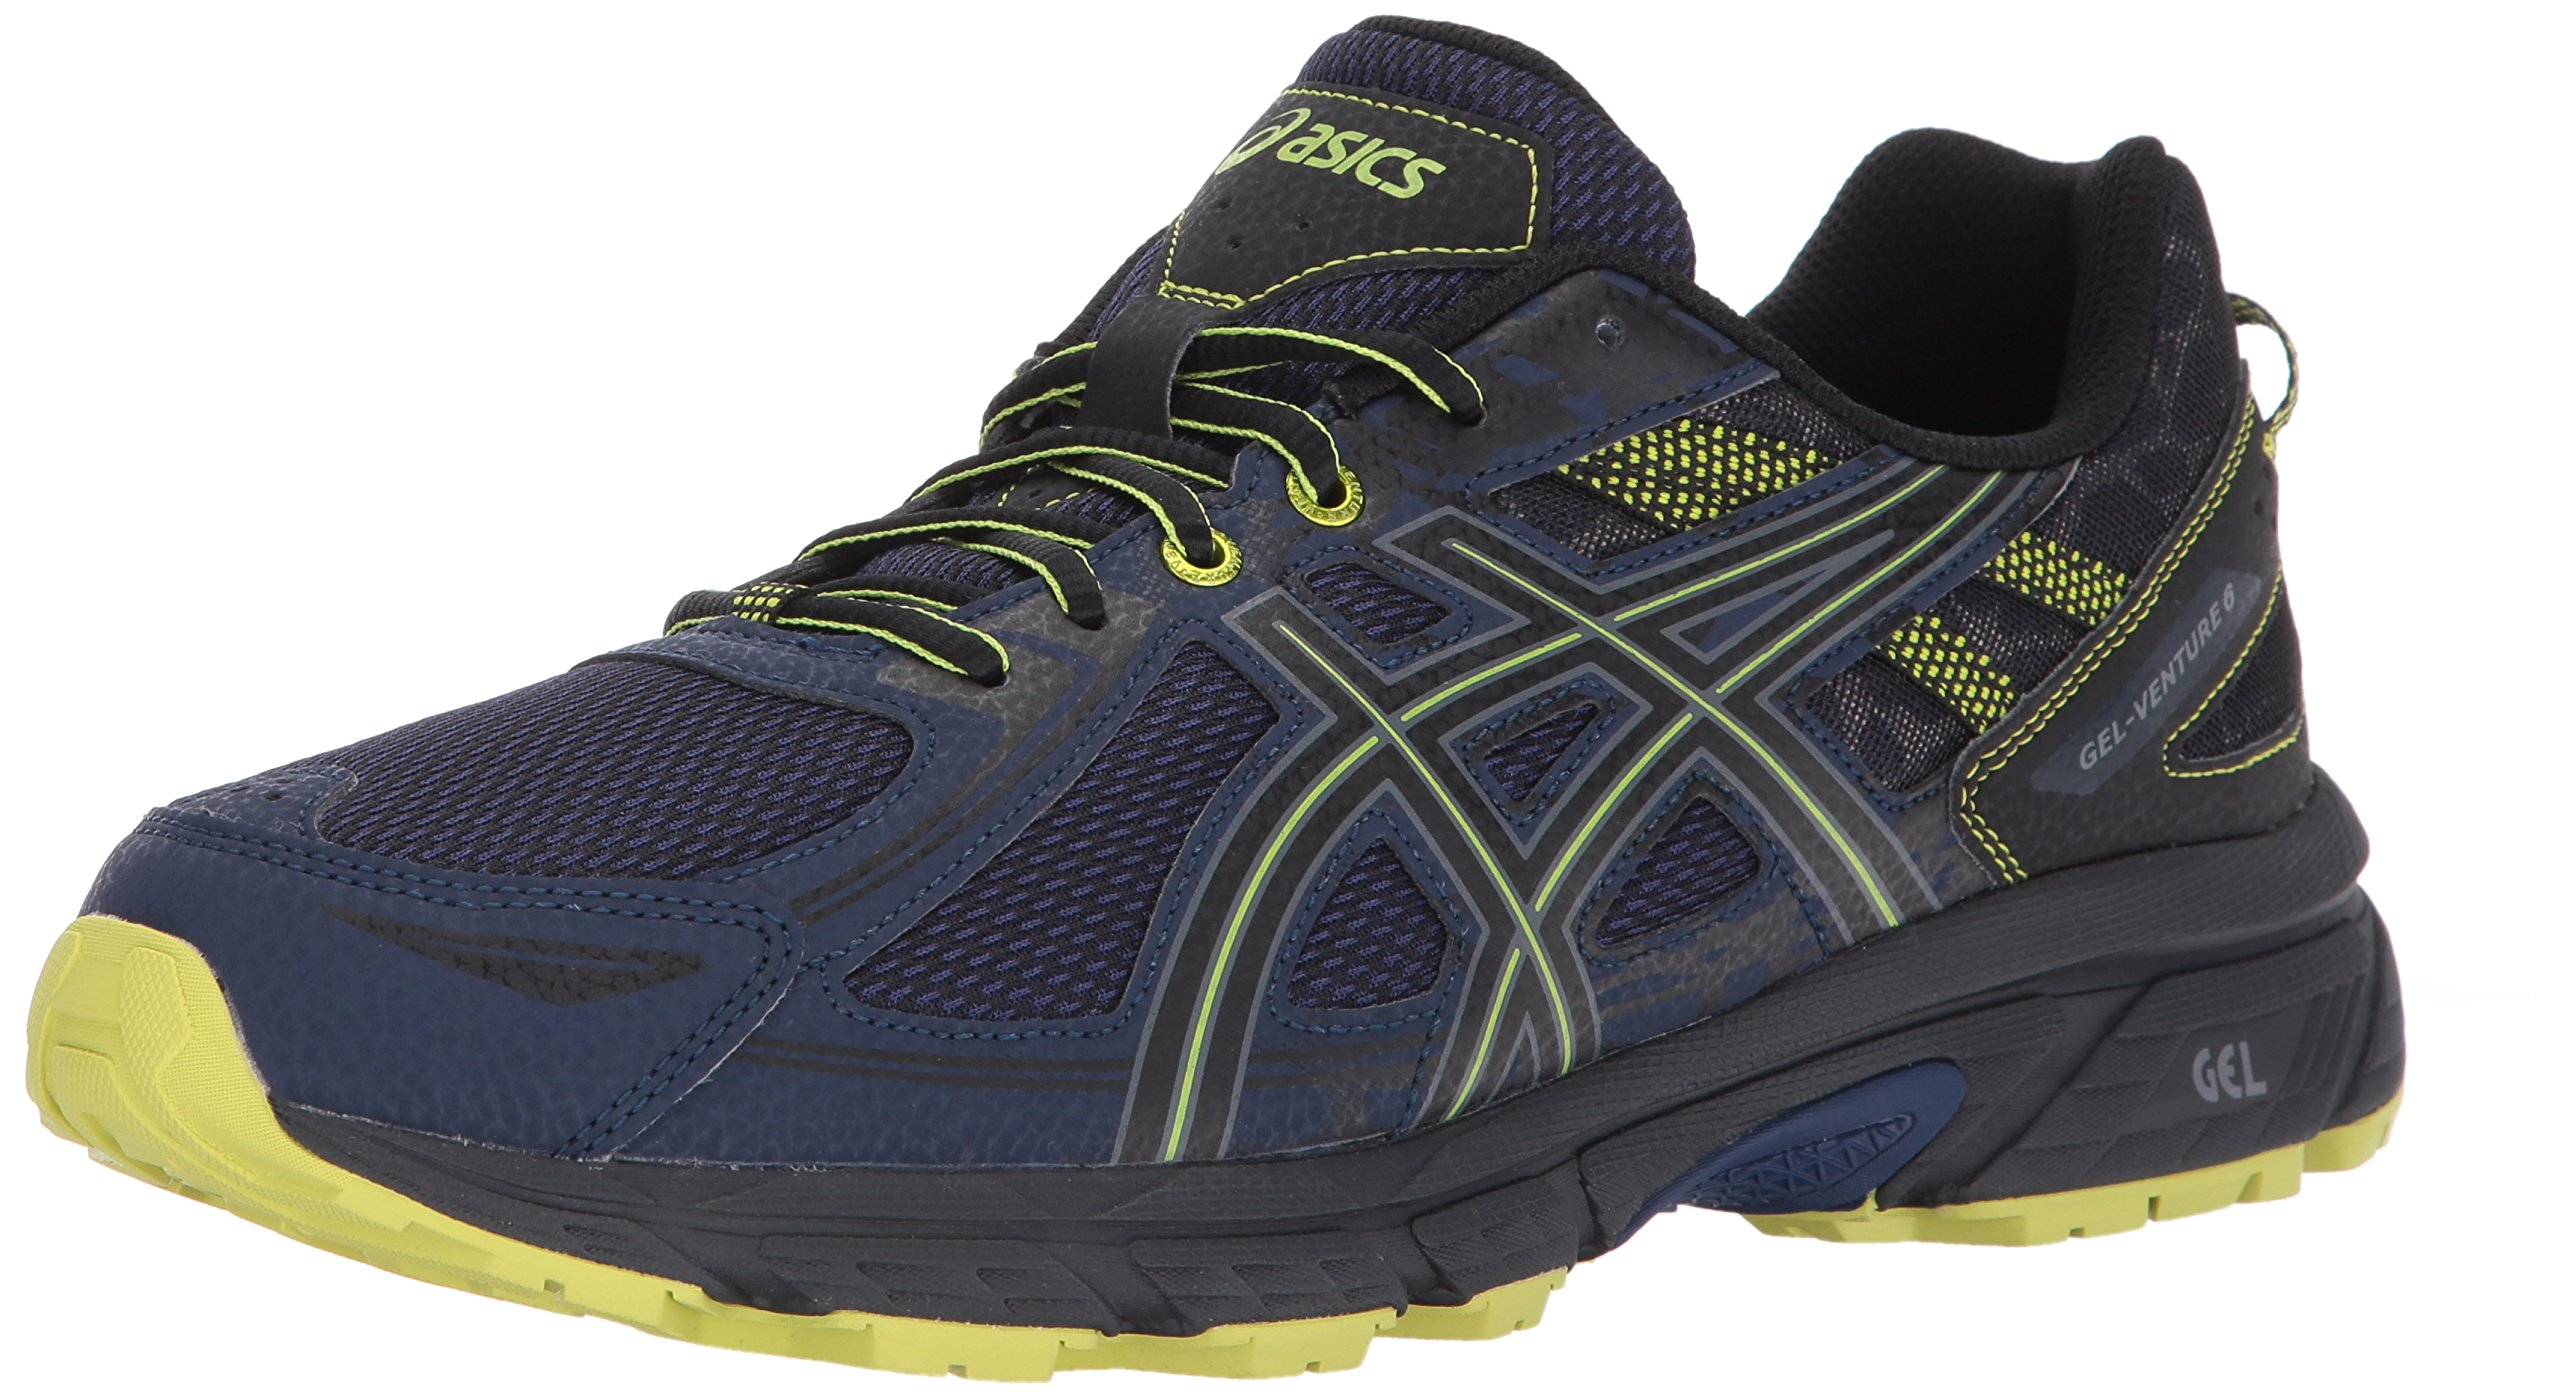 ASICS Mens Gel-Venture 6 Running Shoe, Indigo Blue/Black/Energy Green, 11 Medium US by ASICS